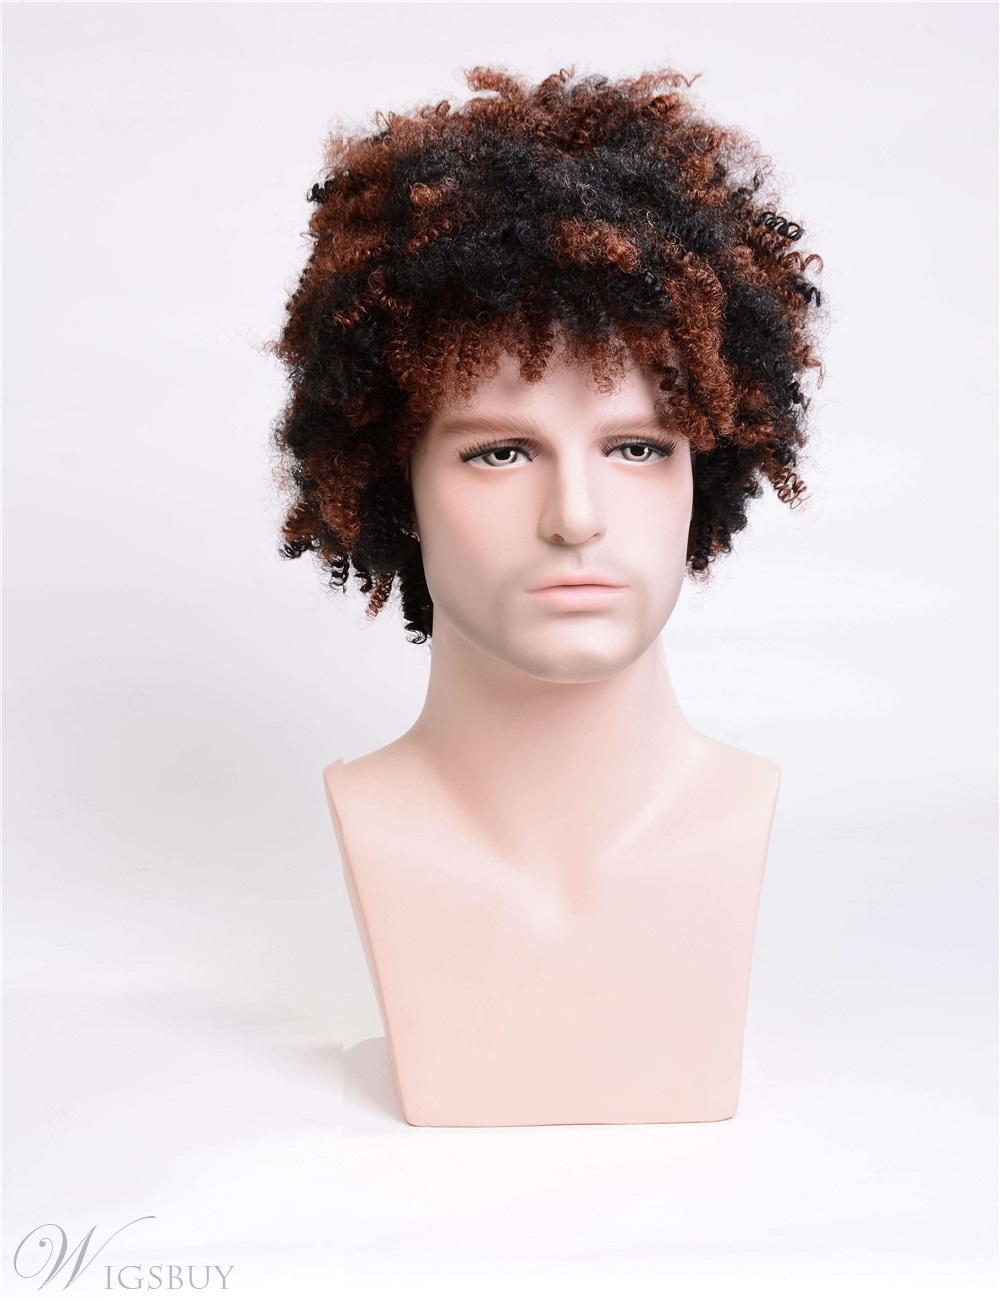 Men's Short Afro Curly Synthetic Hair Capless Wigs Black&Brown Mixed Color 12inch